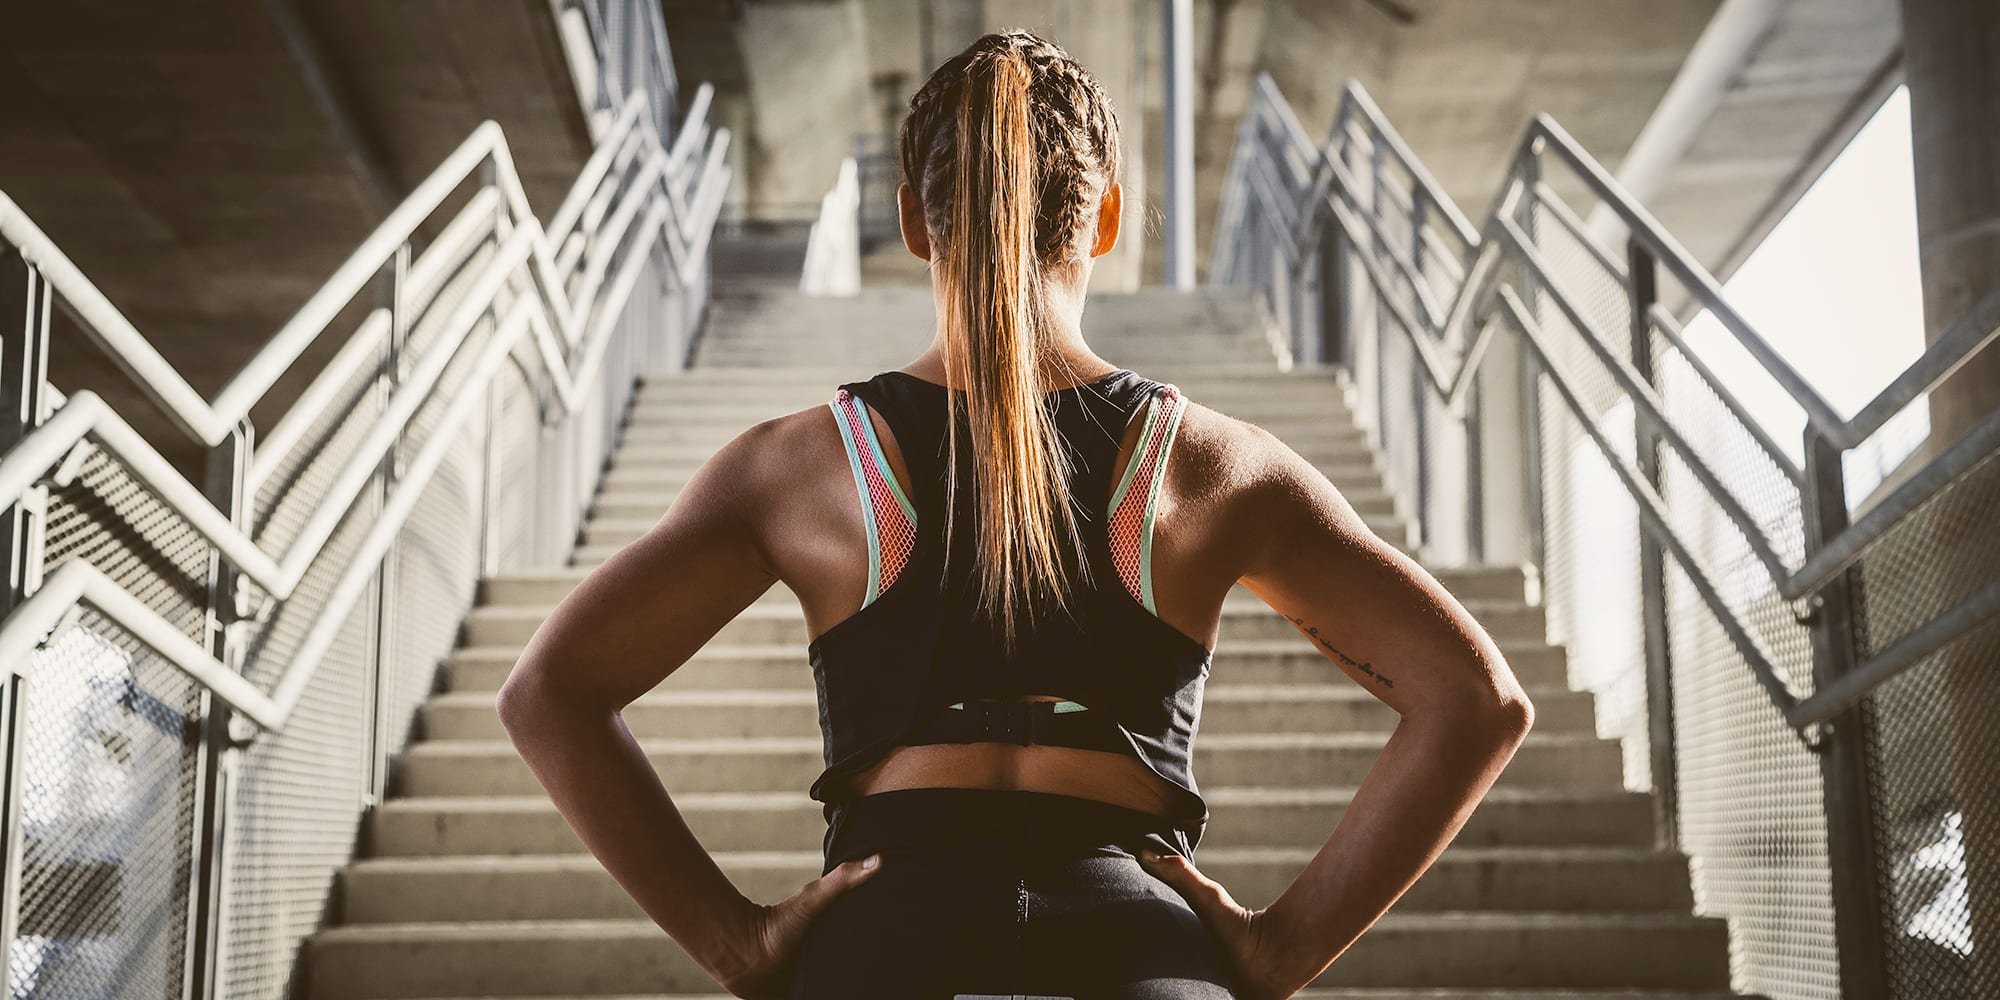 11 Basic Beginner Workout Tips to Help You Get Fit